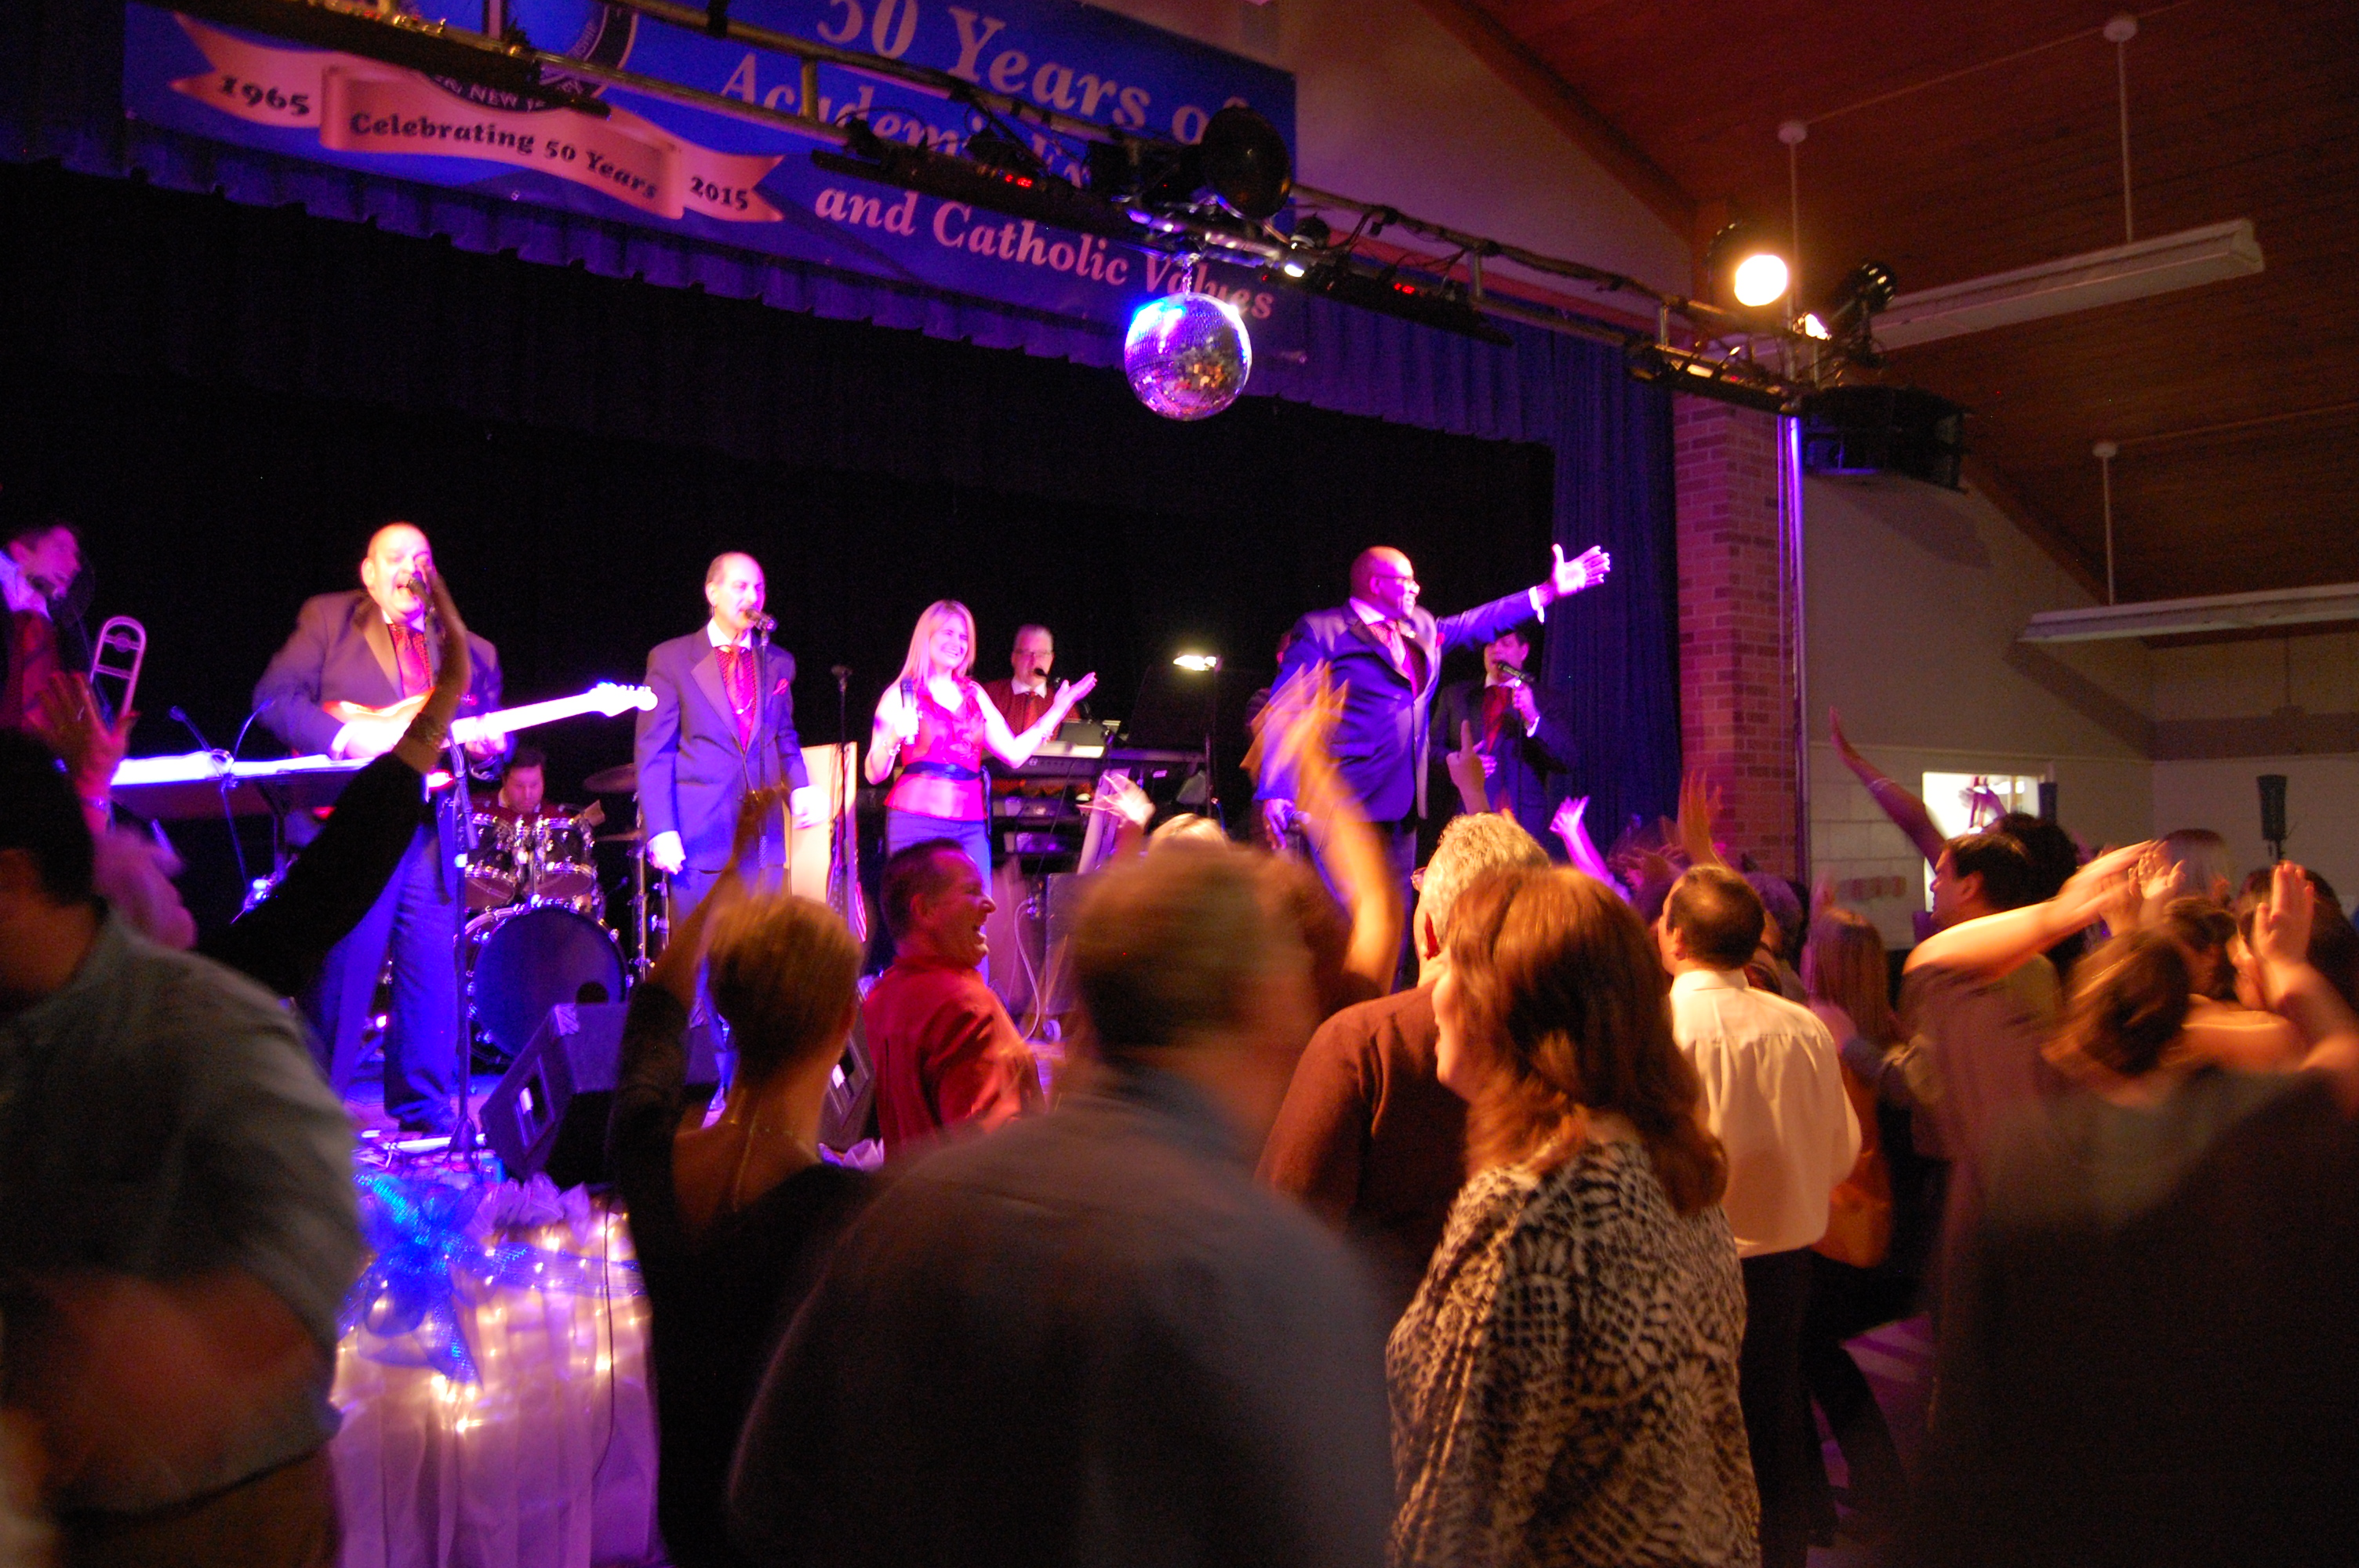 The Infernos perform at the Bobby Buecker Foundation dinner, Feb. 28, 2015. (Photo: Daniel Nee)